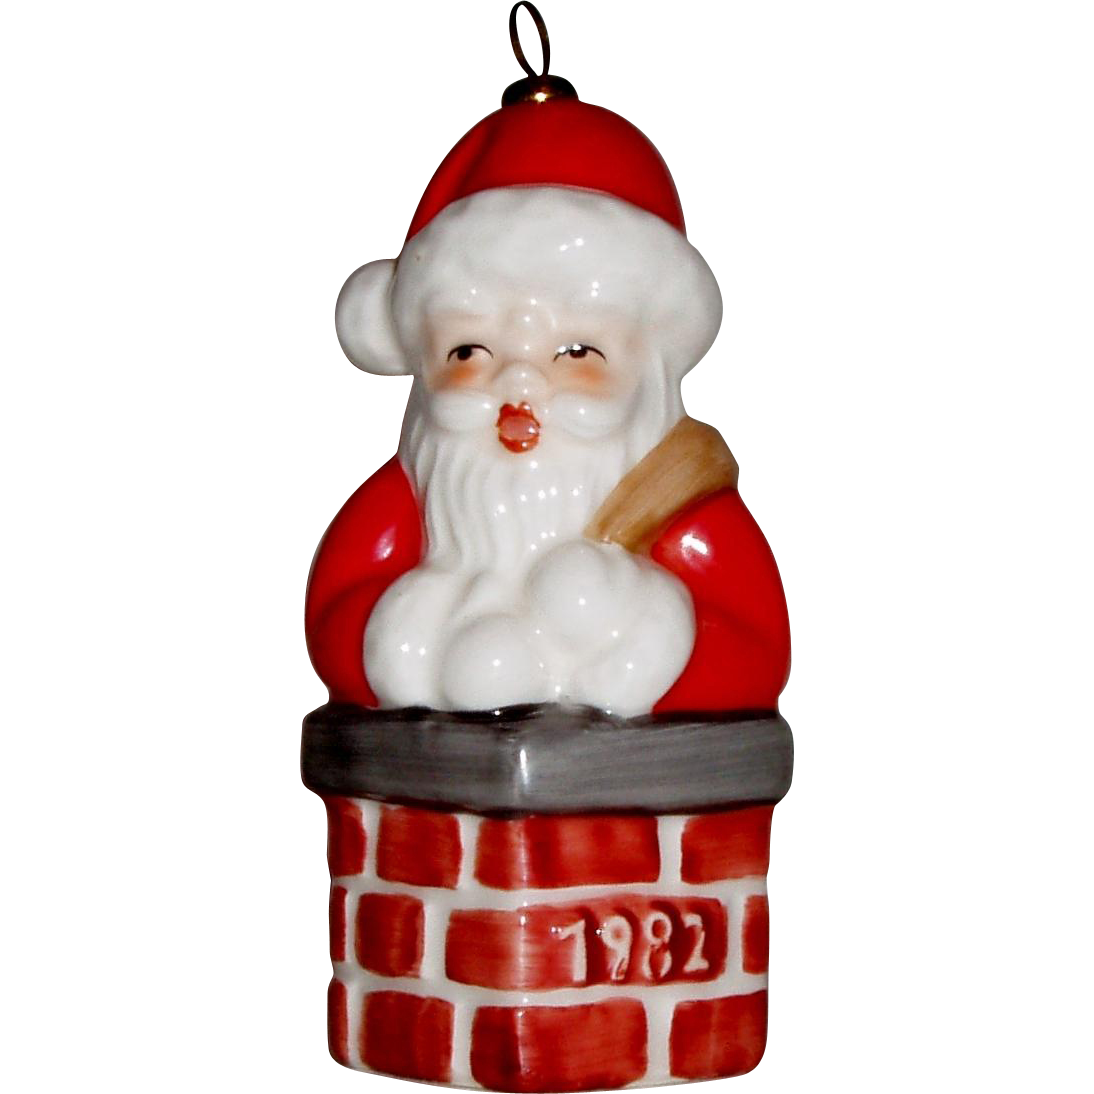 Goebel christmas ornaments - Goebel 1982 Fifth Edition Annual Ornament Santa In Chimney With Original Package